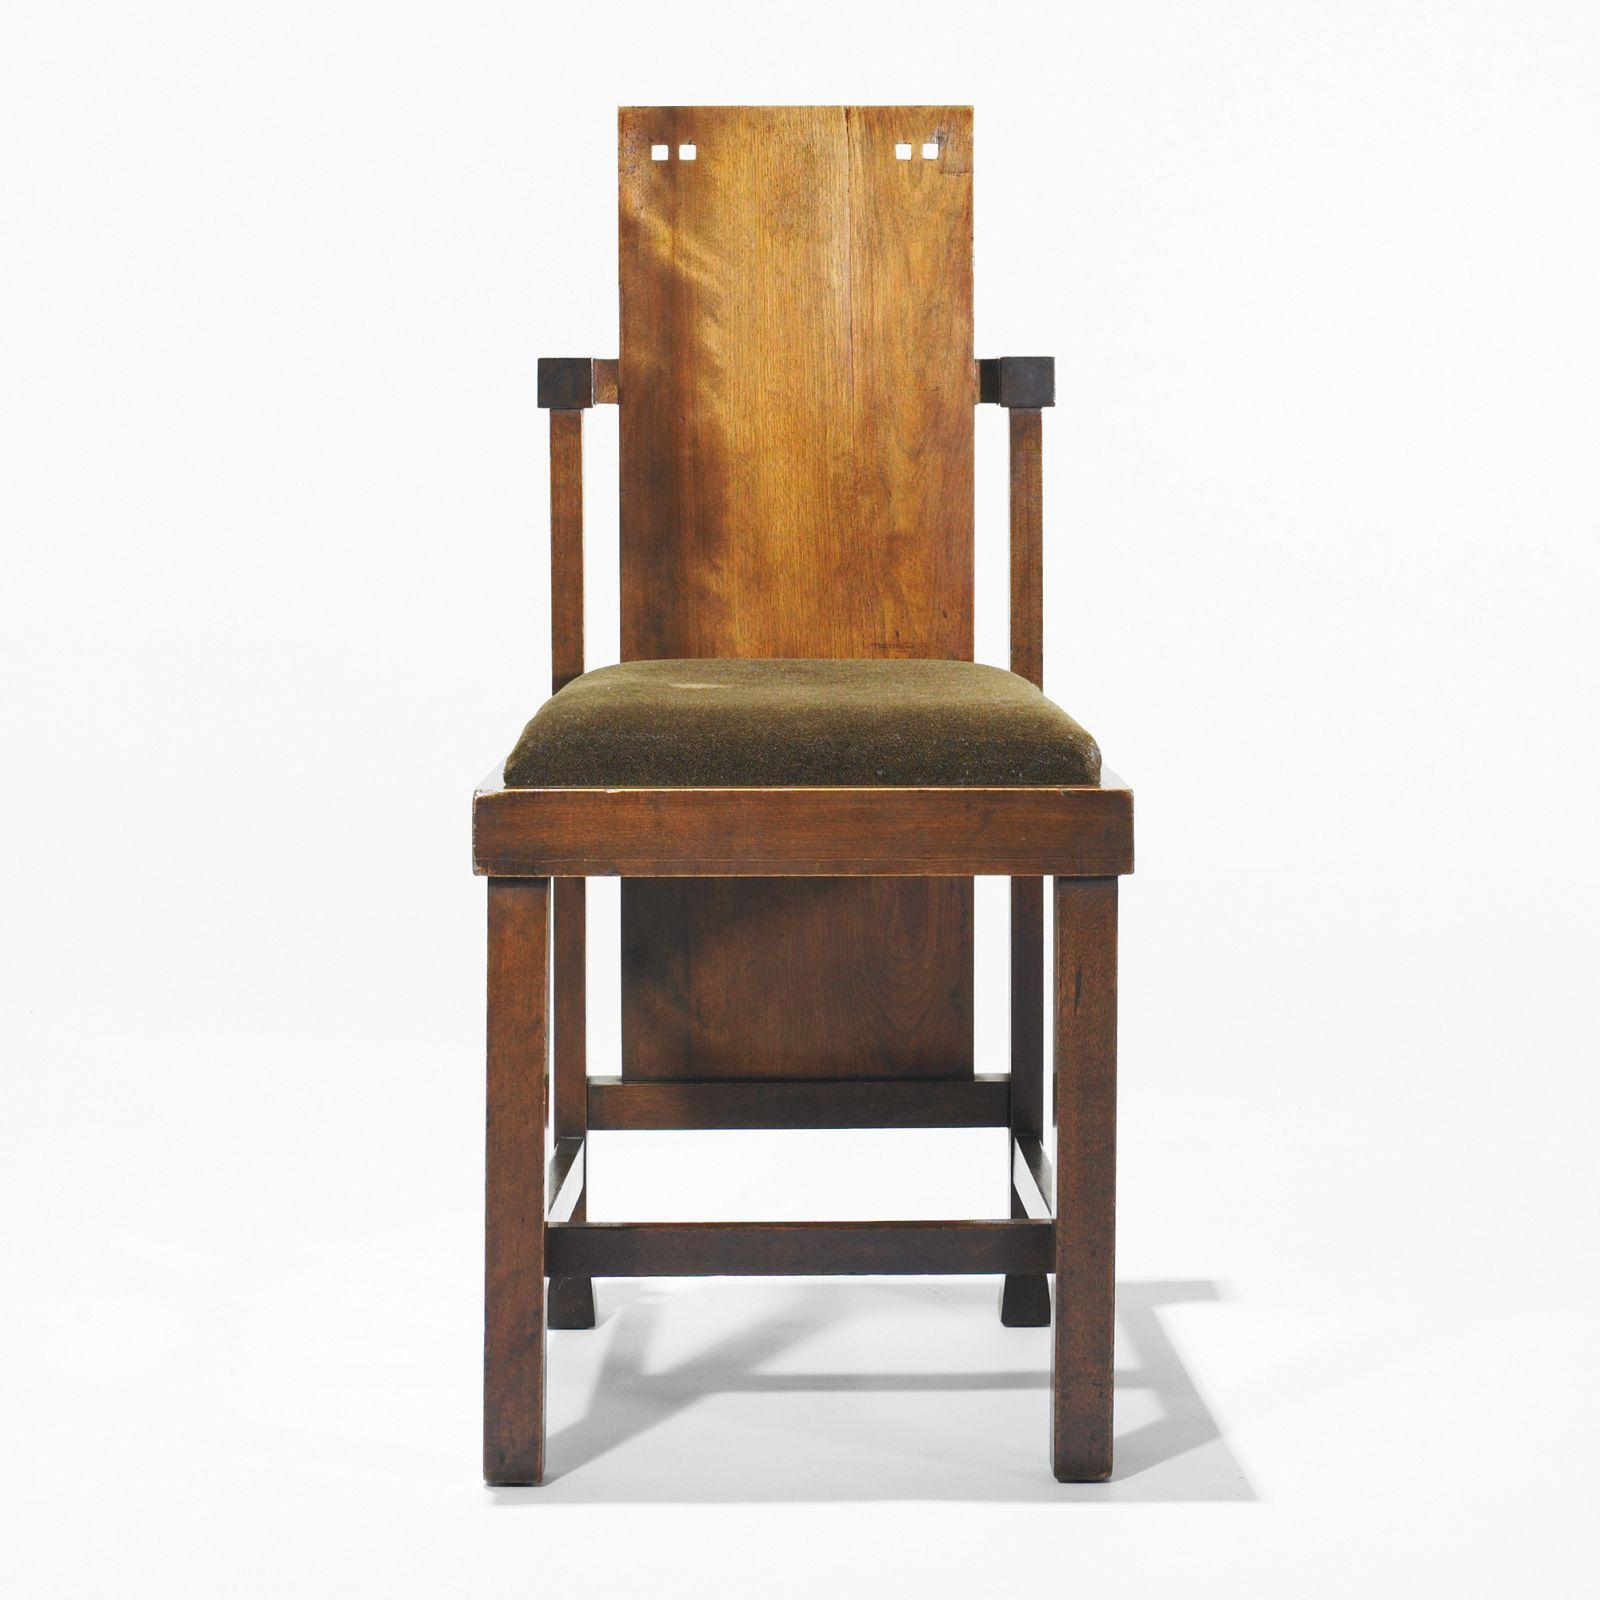 Frank Lloyd Wright chair from the Coonley Playhouse, Riverside